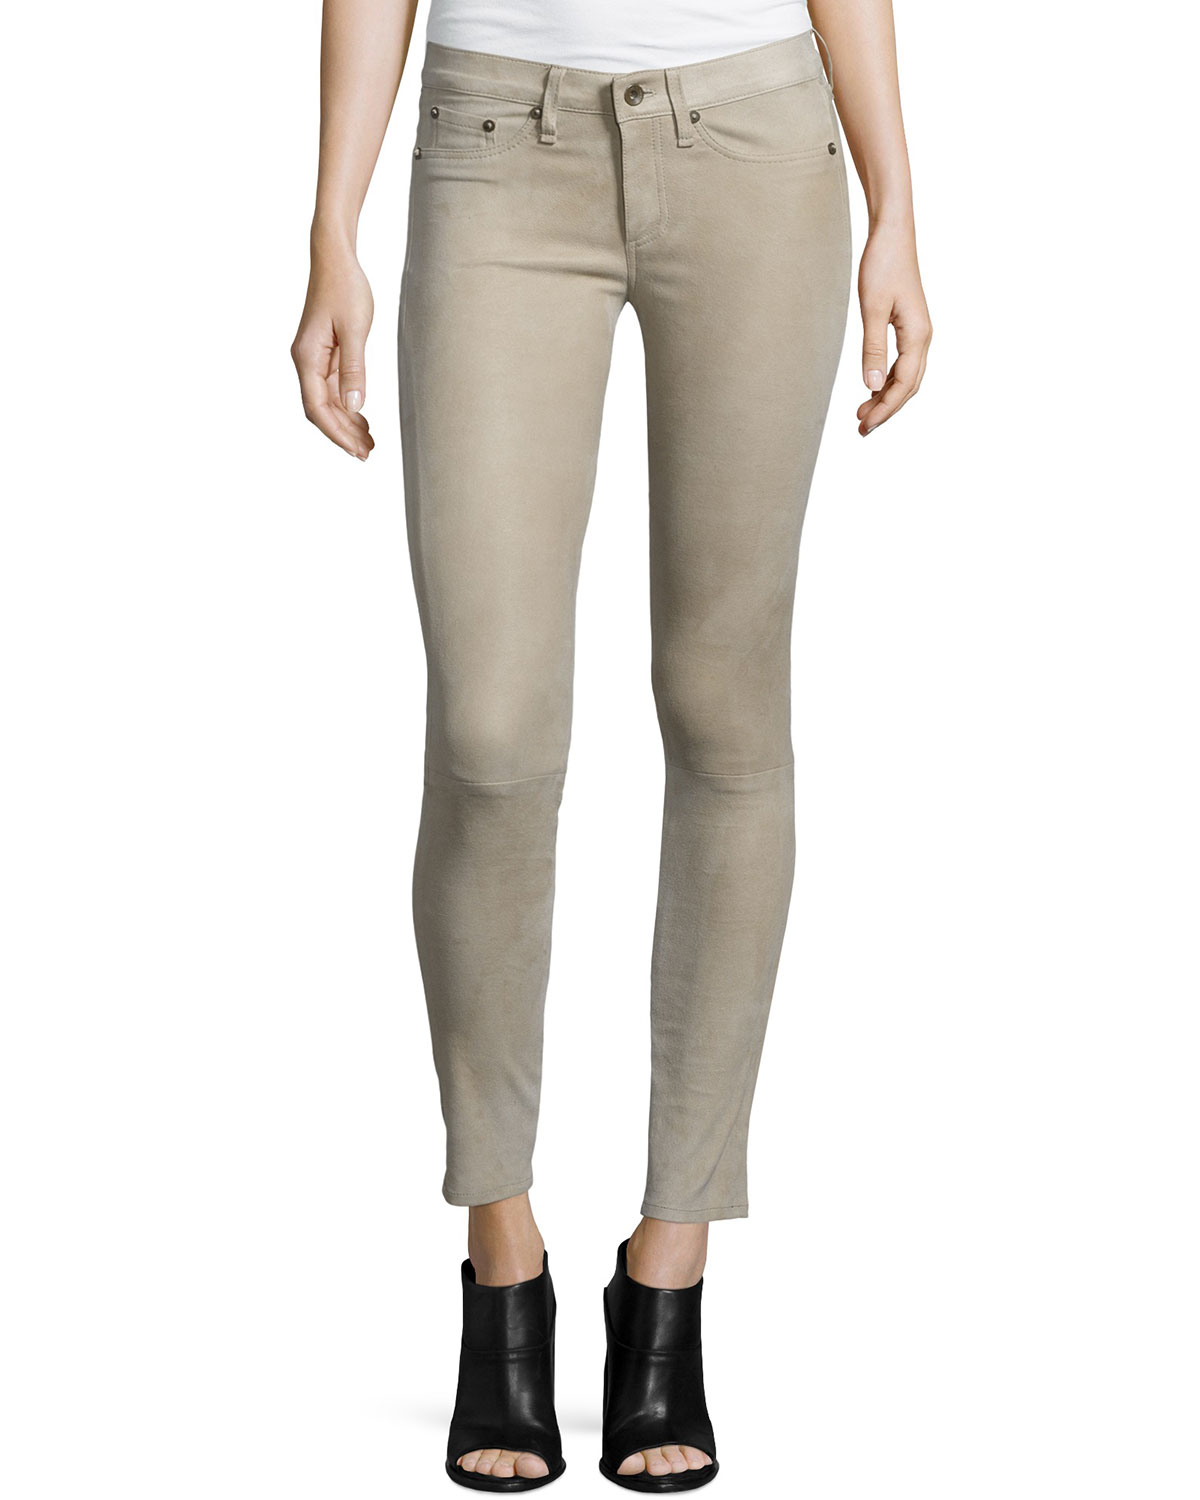 Shop our petite ankle pants for classically-chic styles with a modern spin. Discover Talbots versatile collection of women's petite skinny pants designed for you.